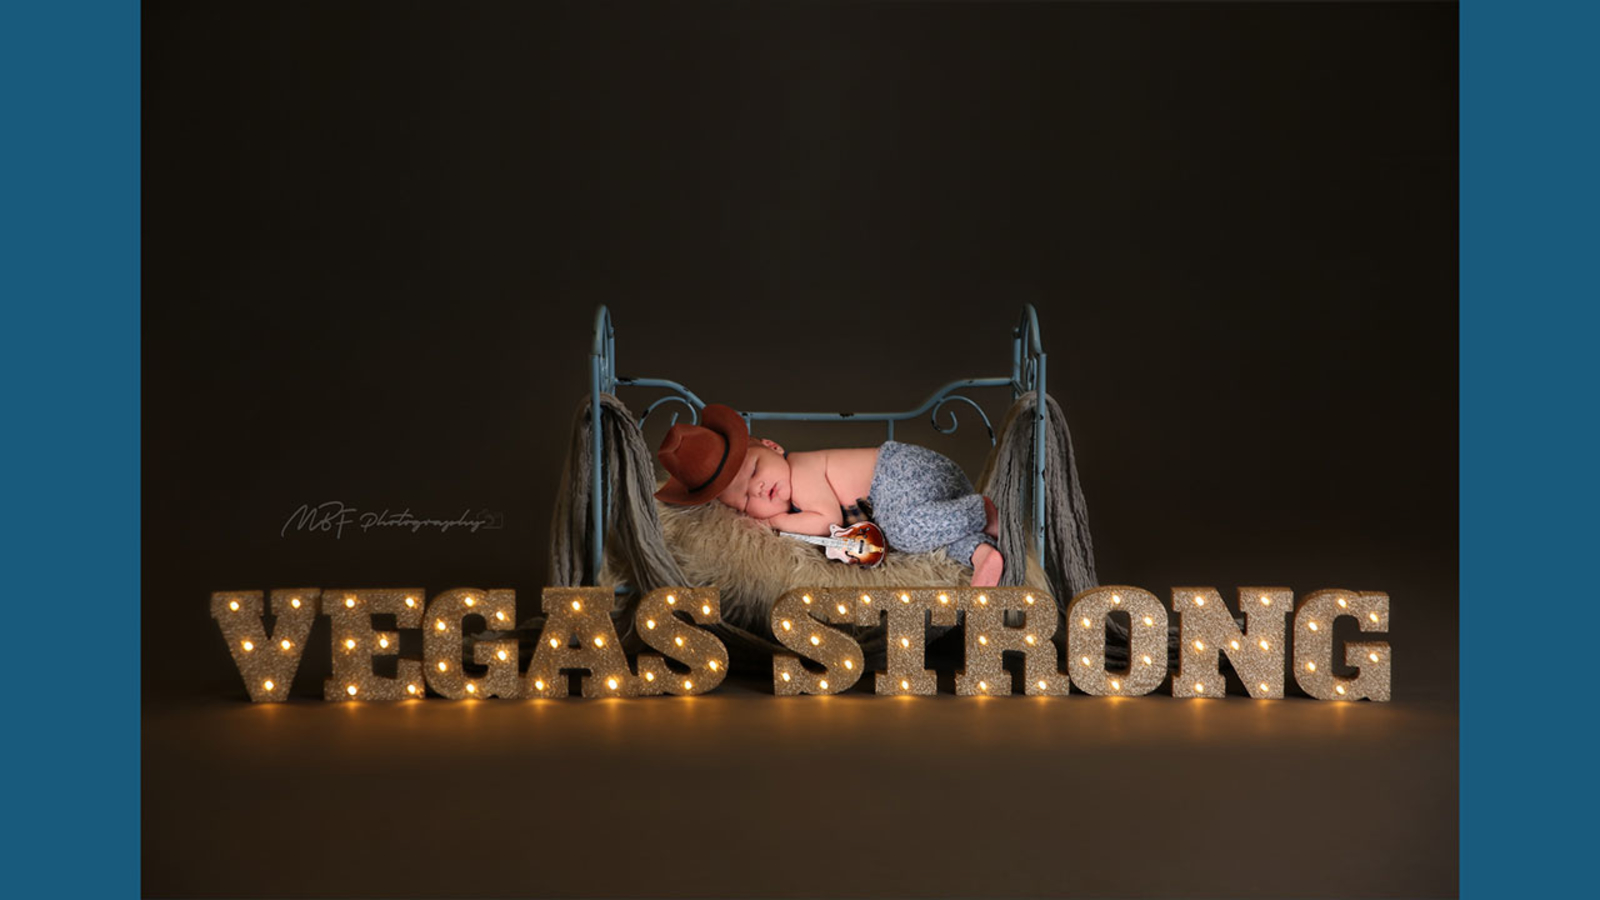 Baby born two days after shooting stars in 'Vegas strong' photo shoot | abc7.com